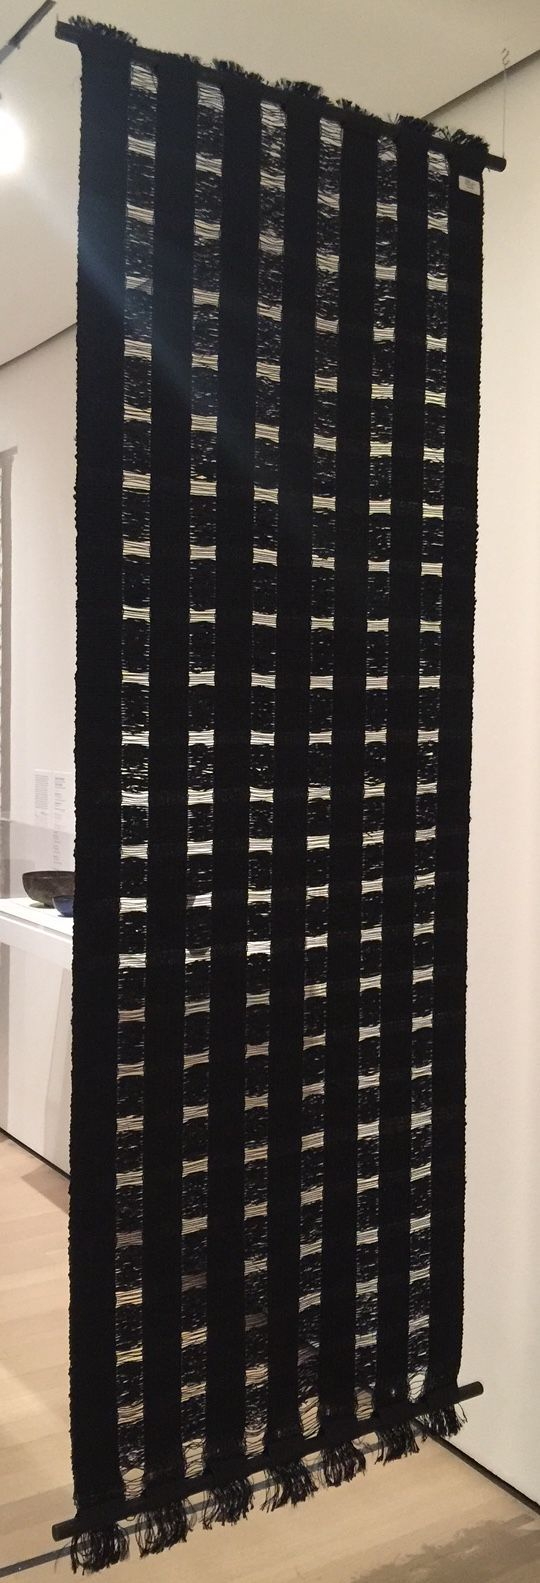 Freehanging room divider cellophane u cord by anni albers